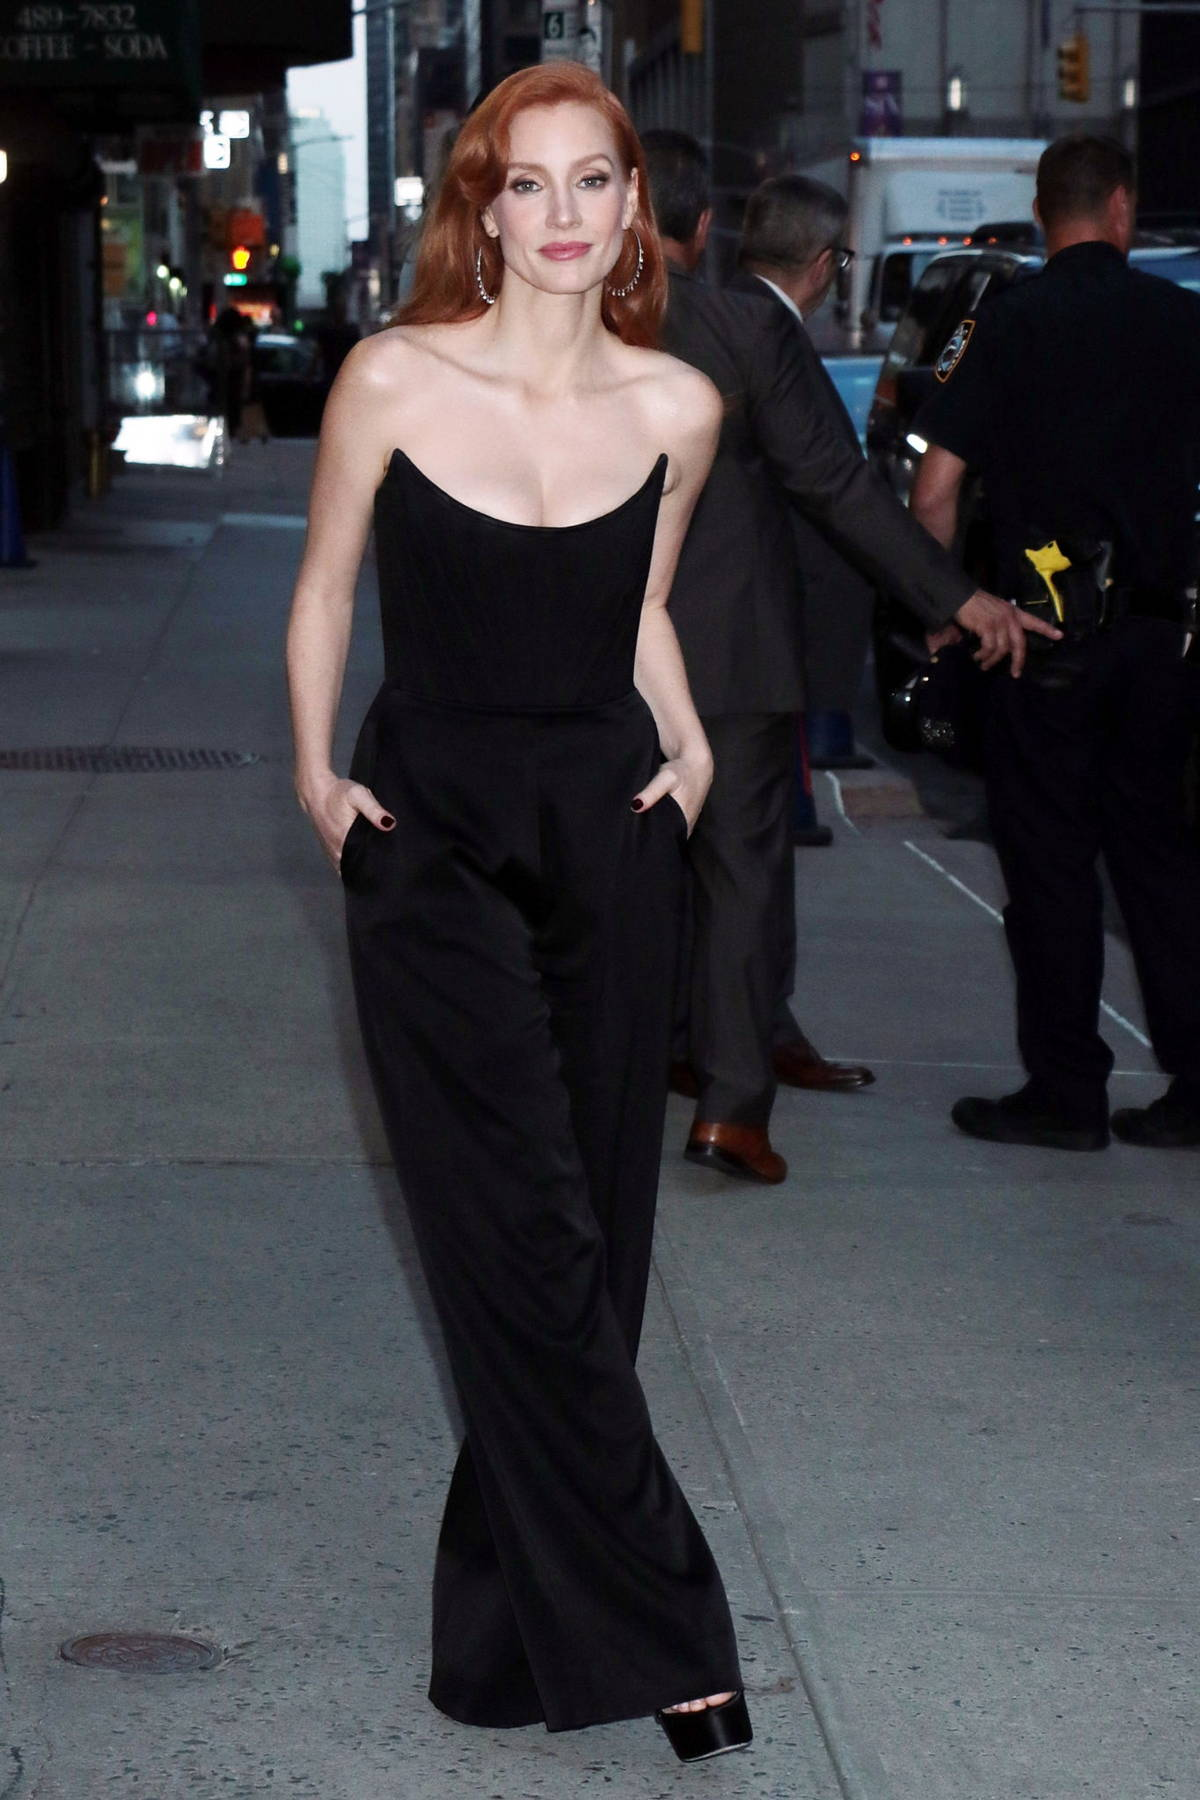 Jessica Chastain looks stunning in a black jumpsuit while out in New York City